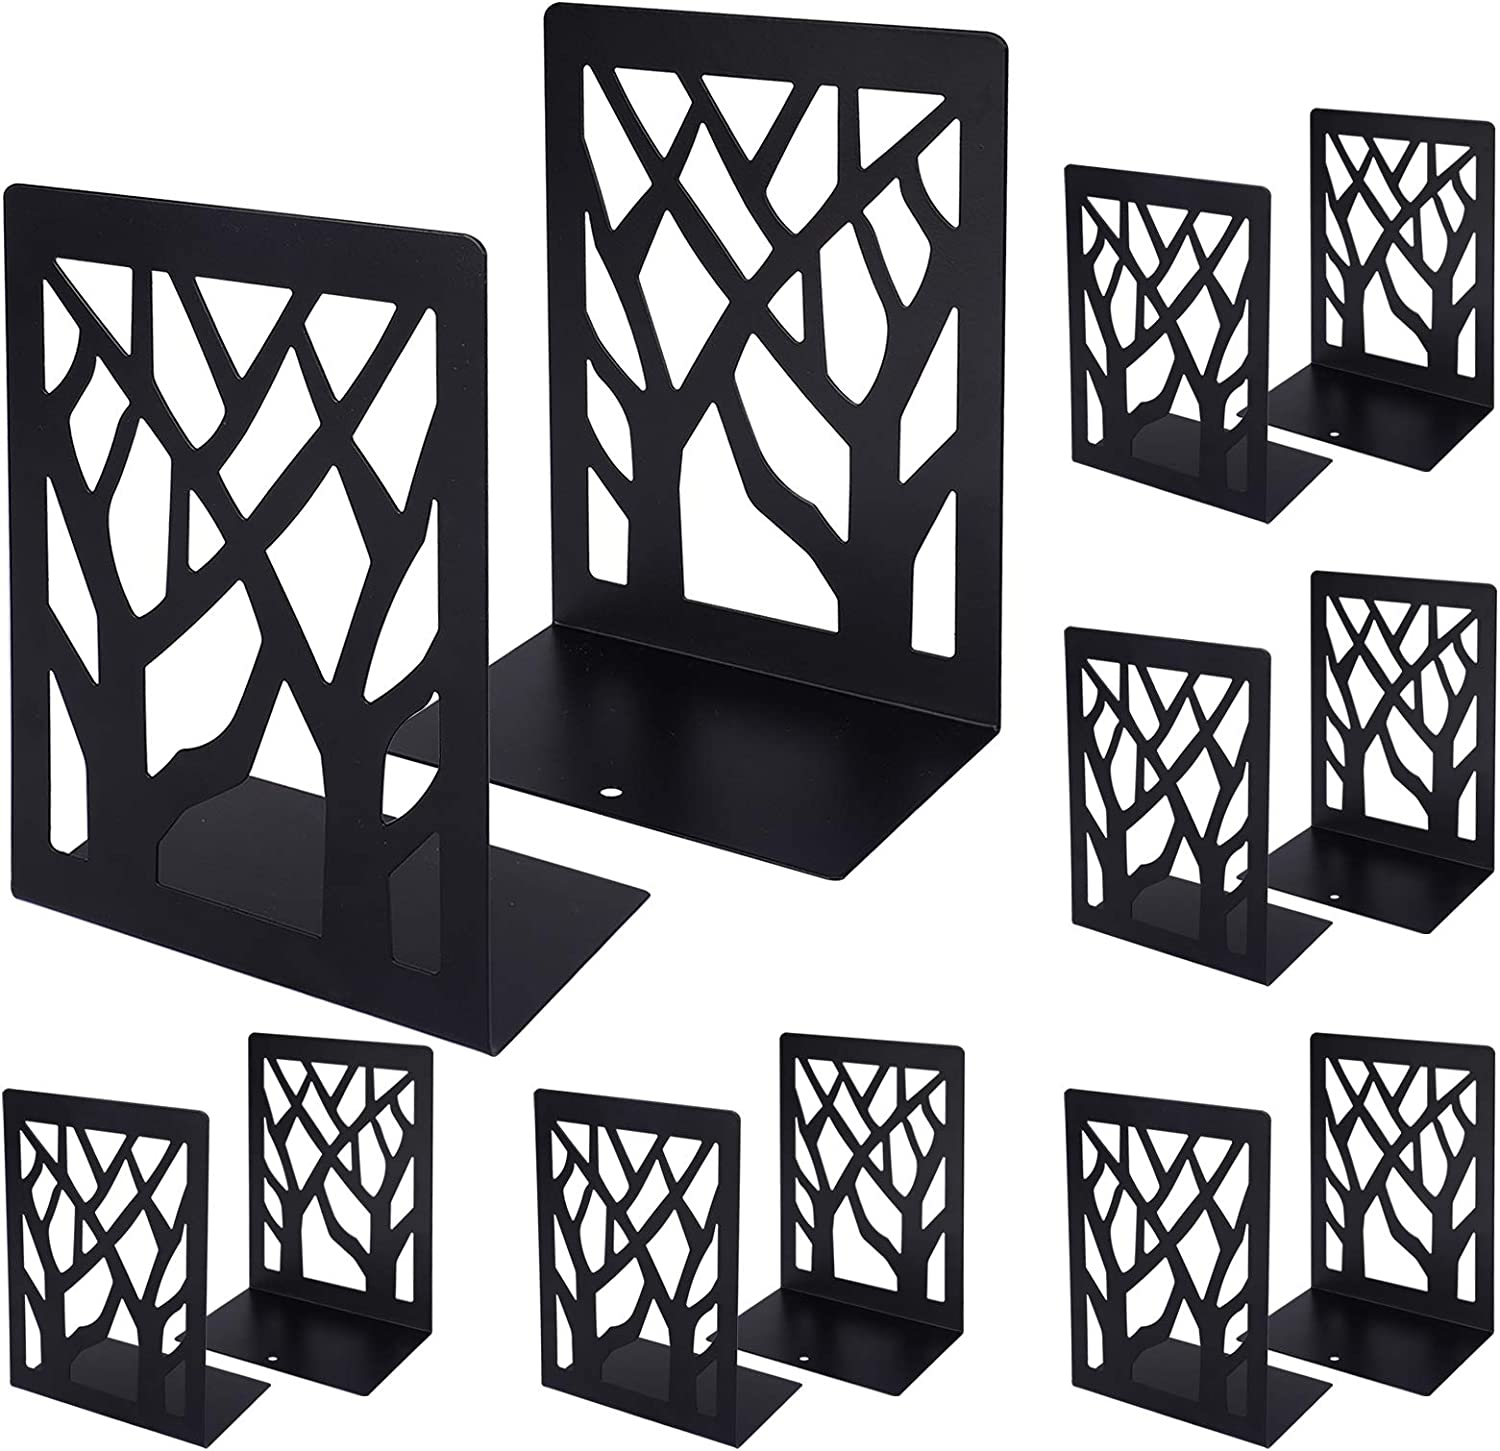 Helsens New Shipping Free Bookends Memphis Mall Book Ends Metal Shelve for